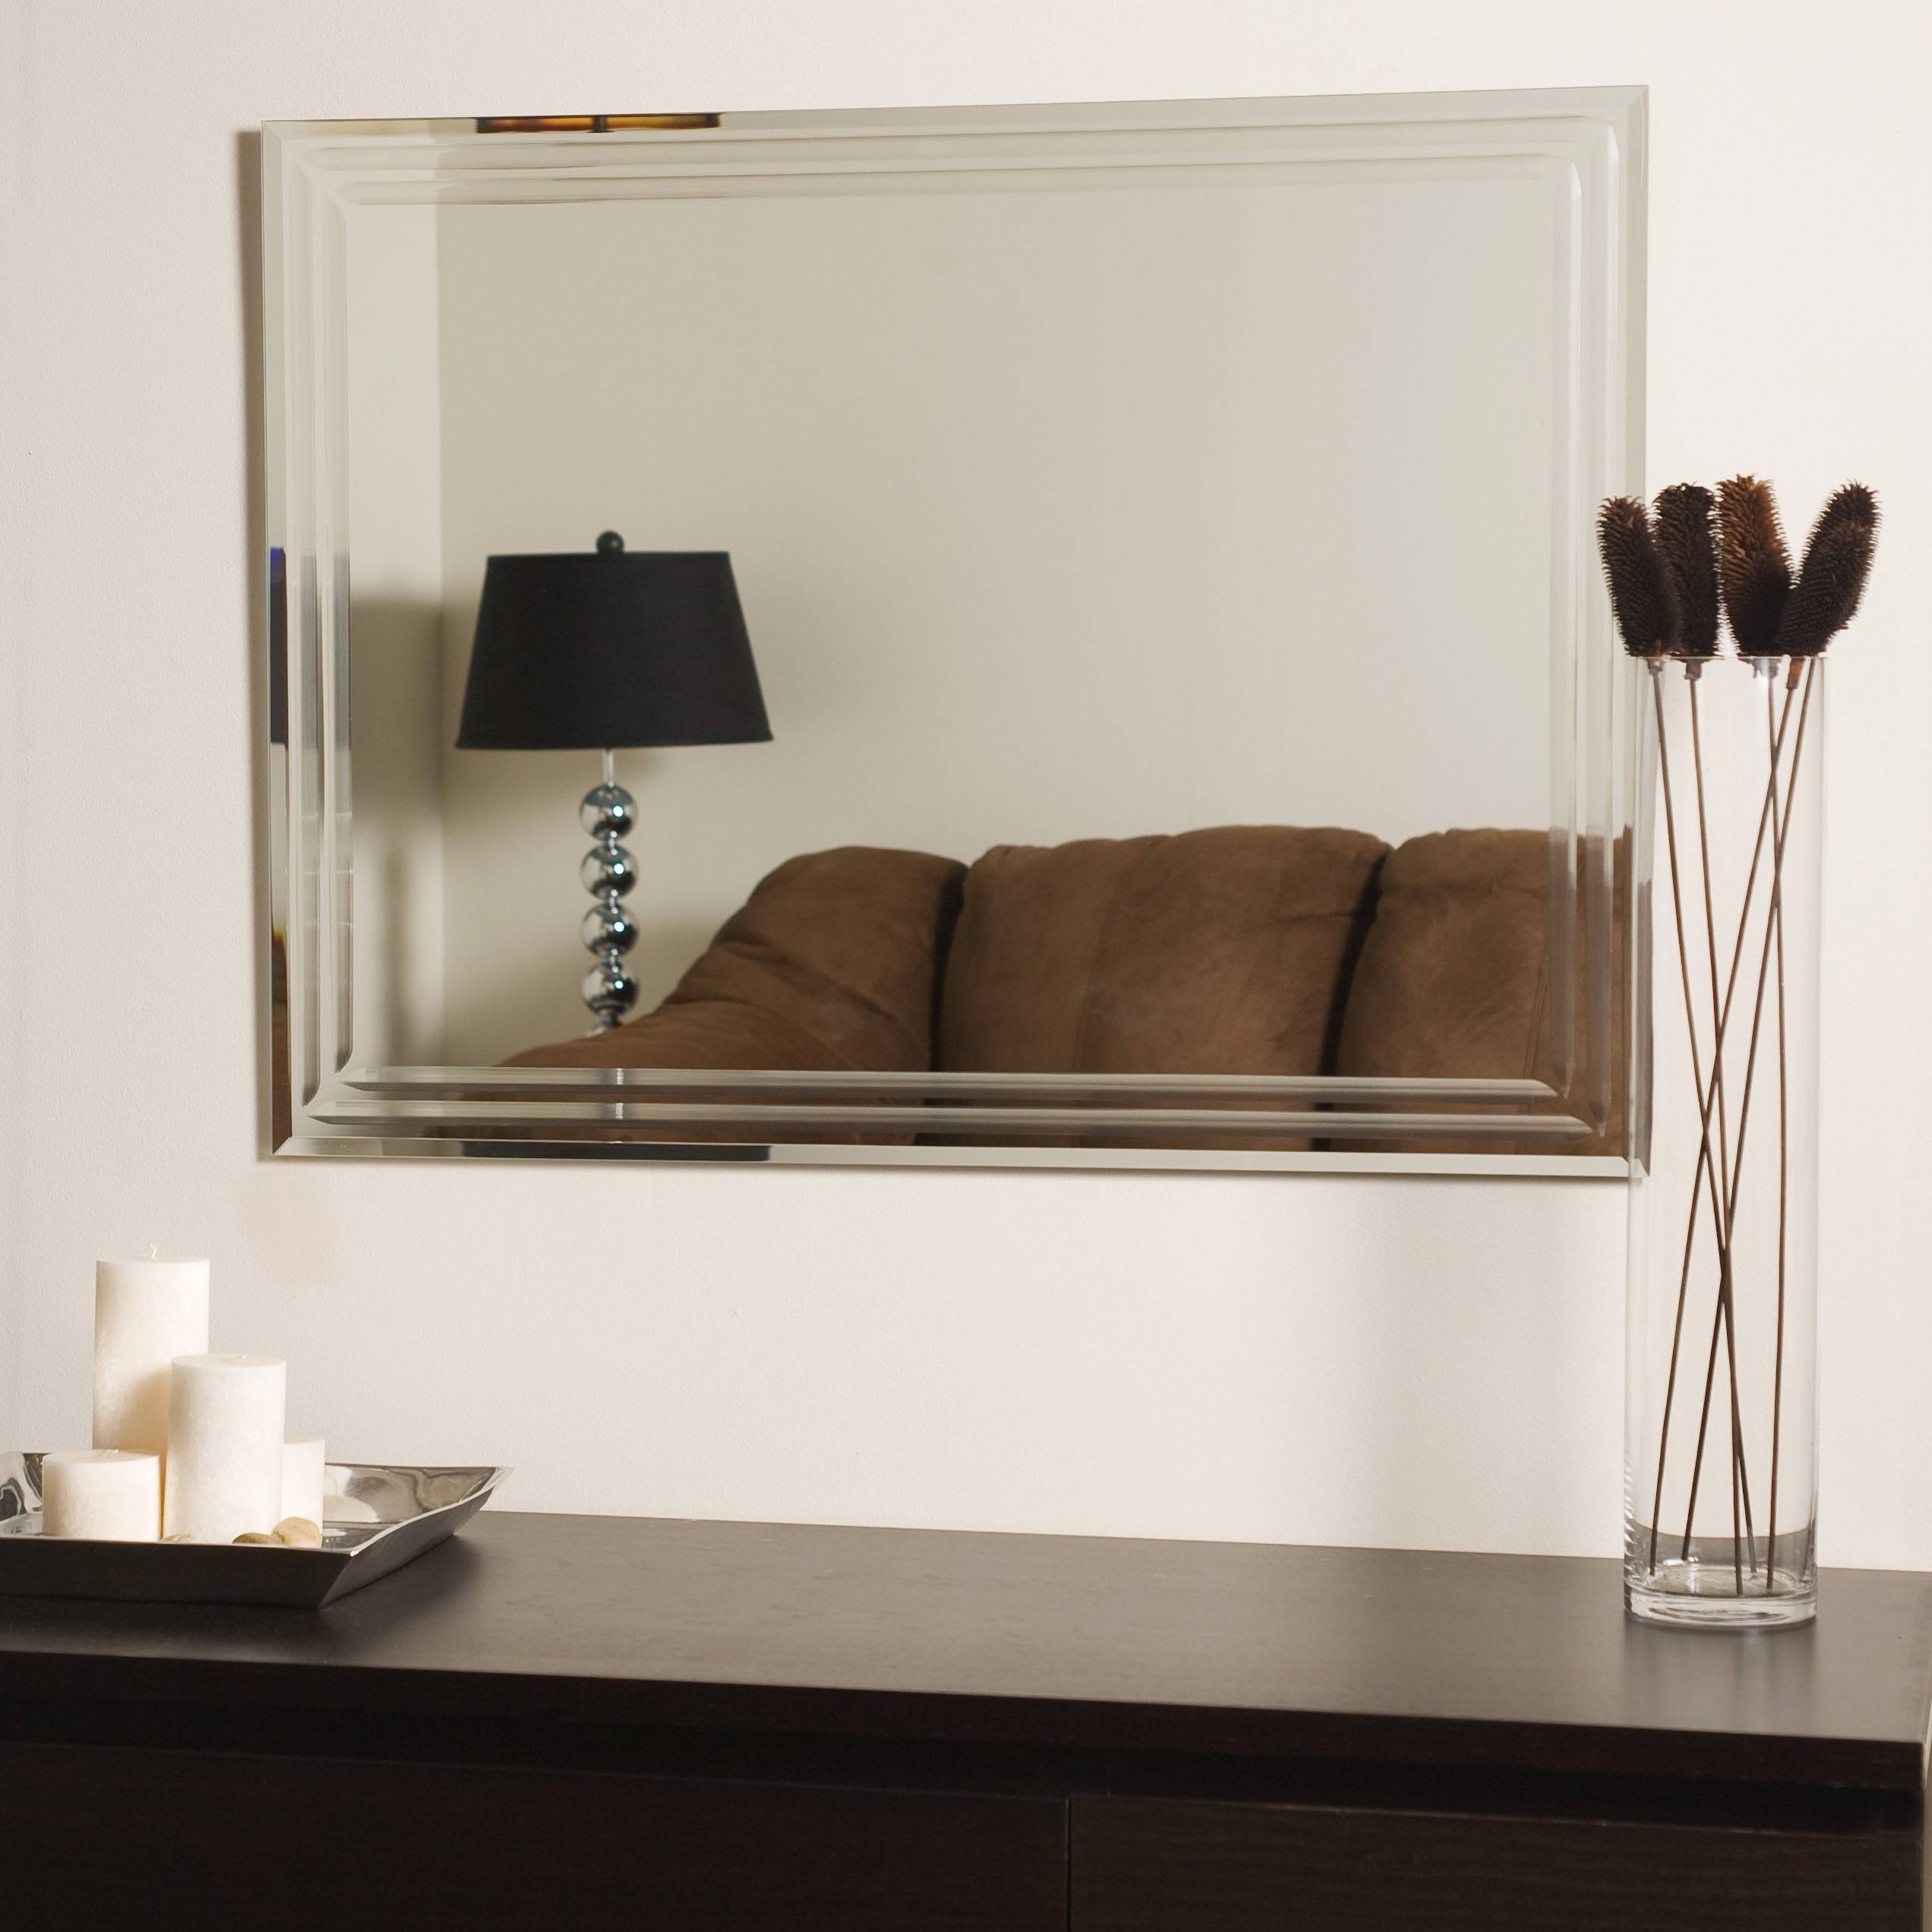 Decor Wonderland Frameless Tri-Bevel Wall Mirror - Beyond Stores throughout Bevelled Wall Mirrors (Image 13 of 25)